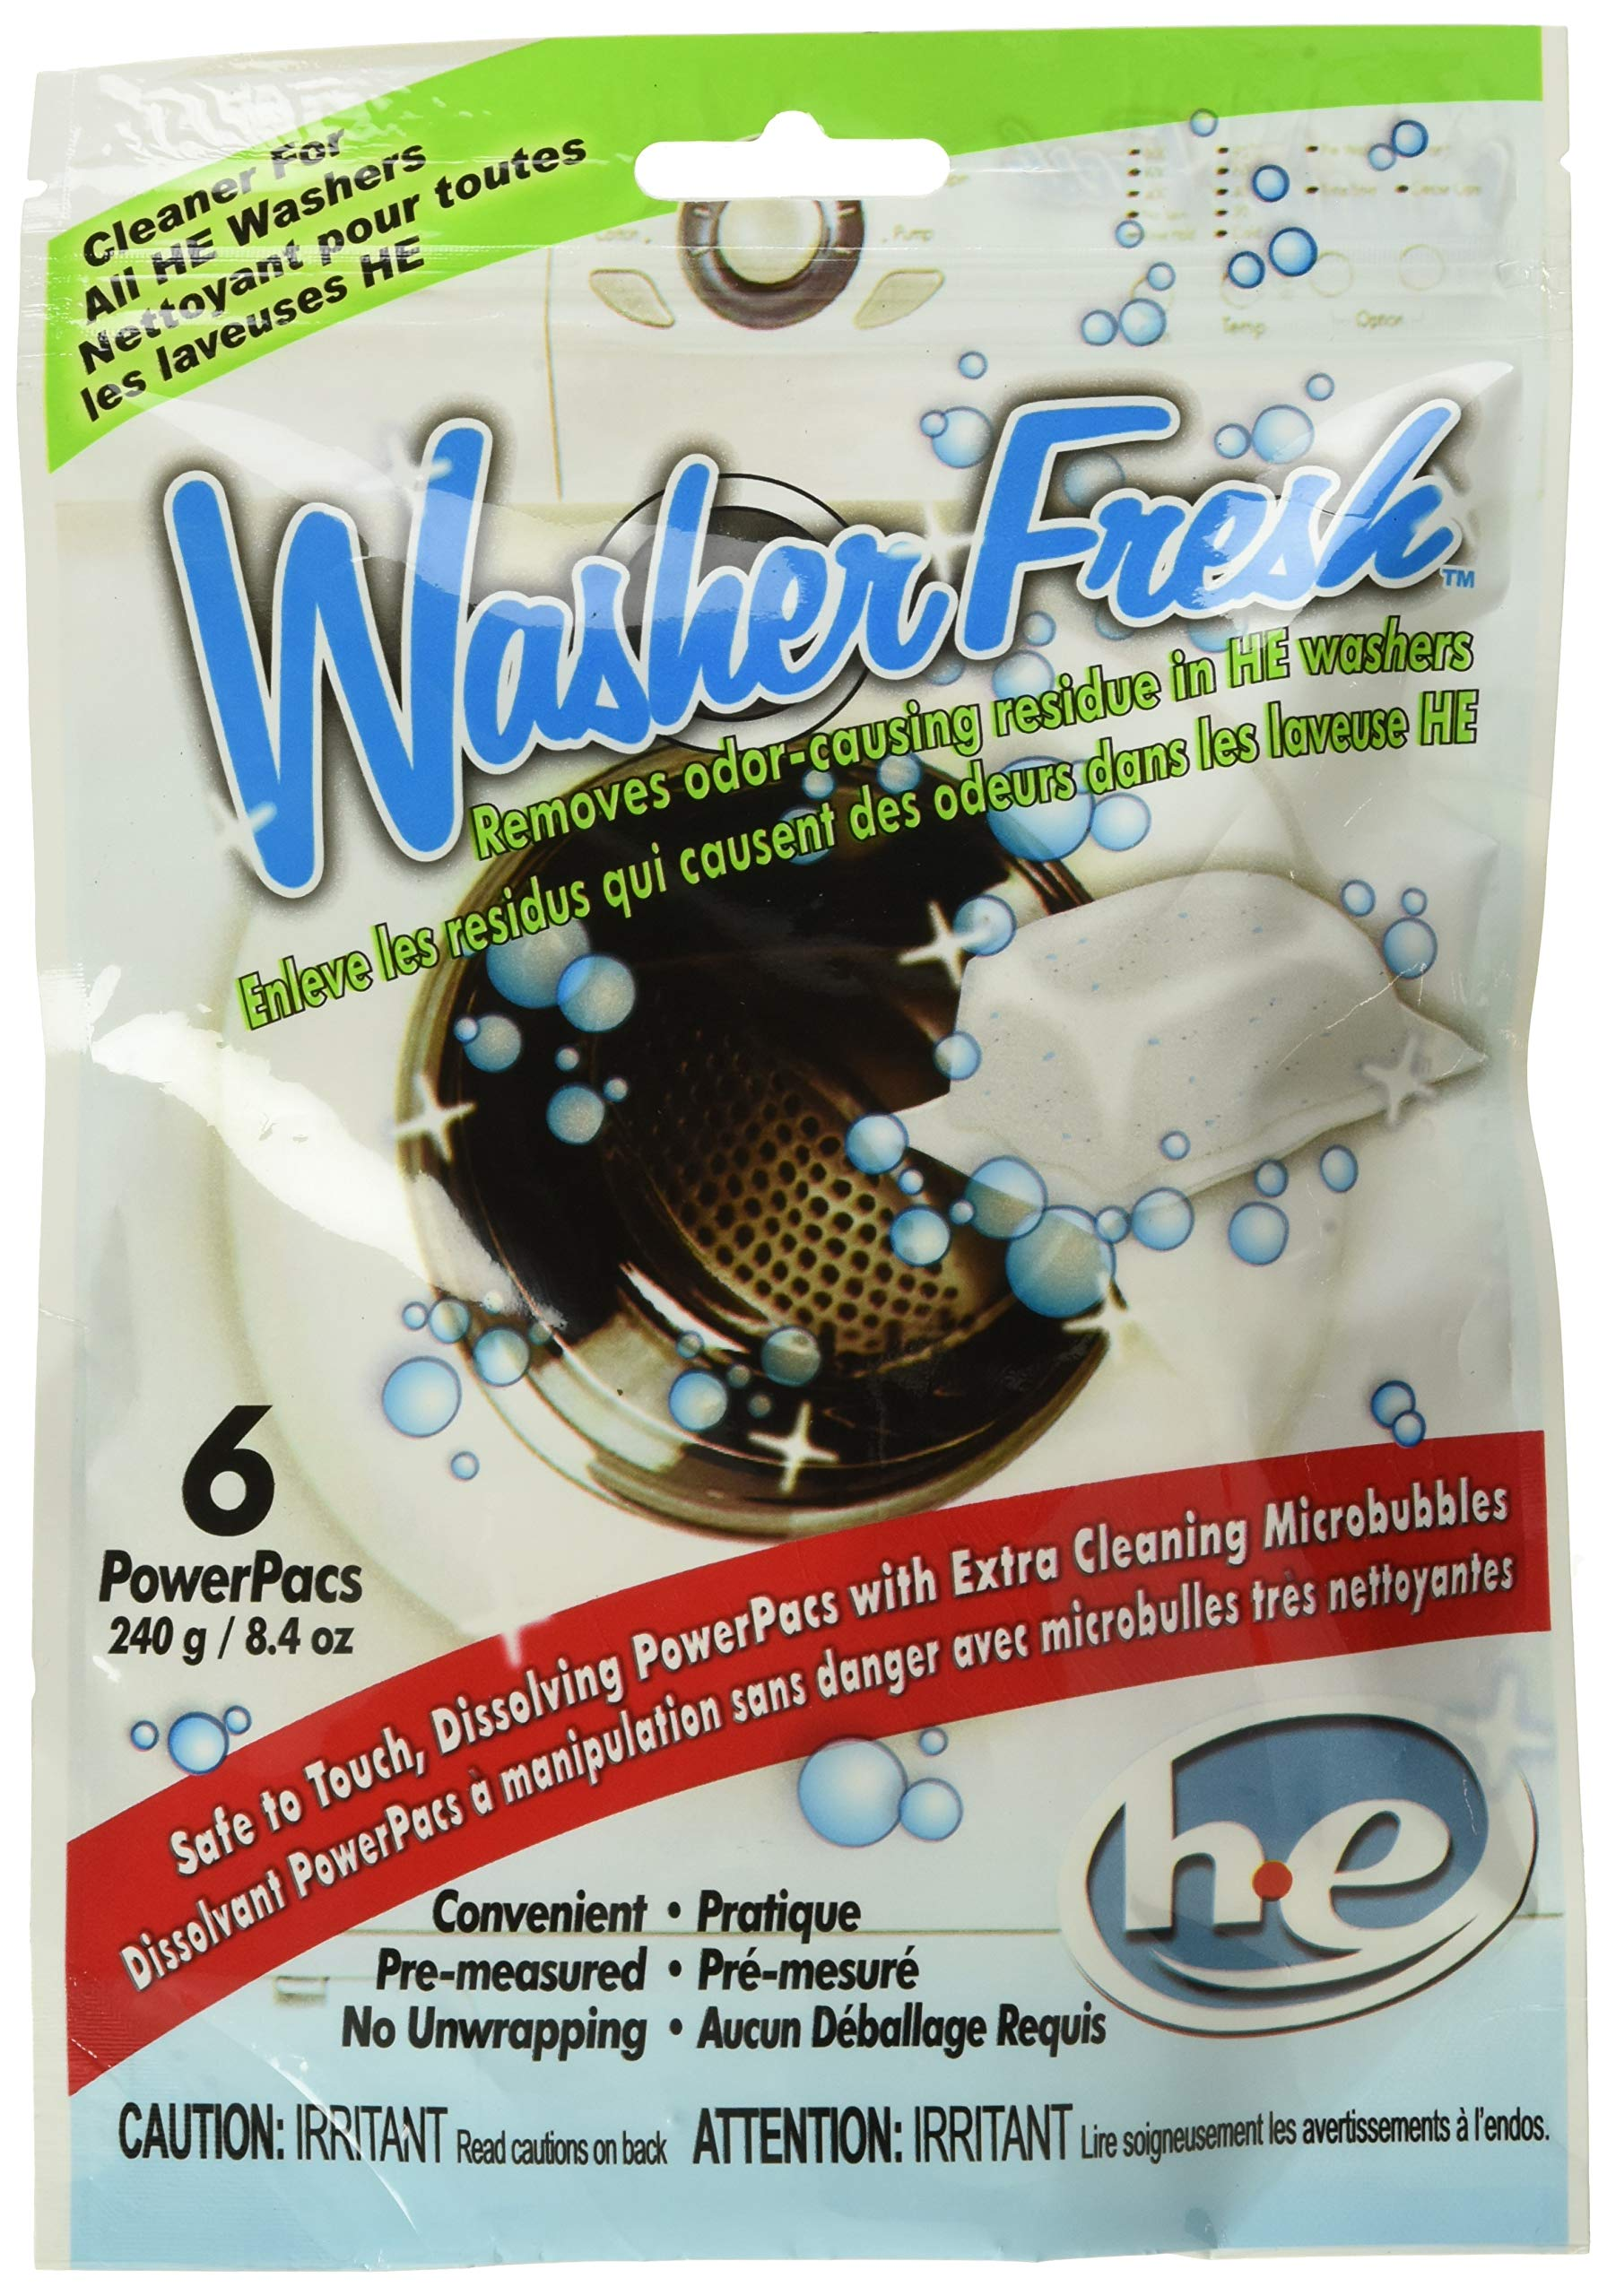 WasherFresh HE Washing Machine Cleaner PowerPac Pouches, Pack of 6 Pouches